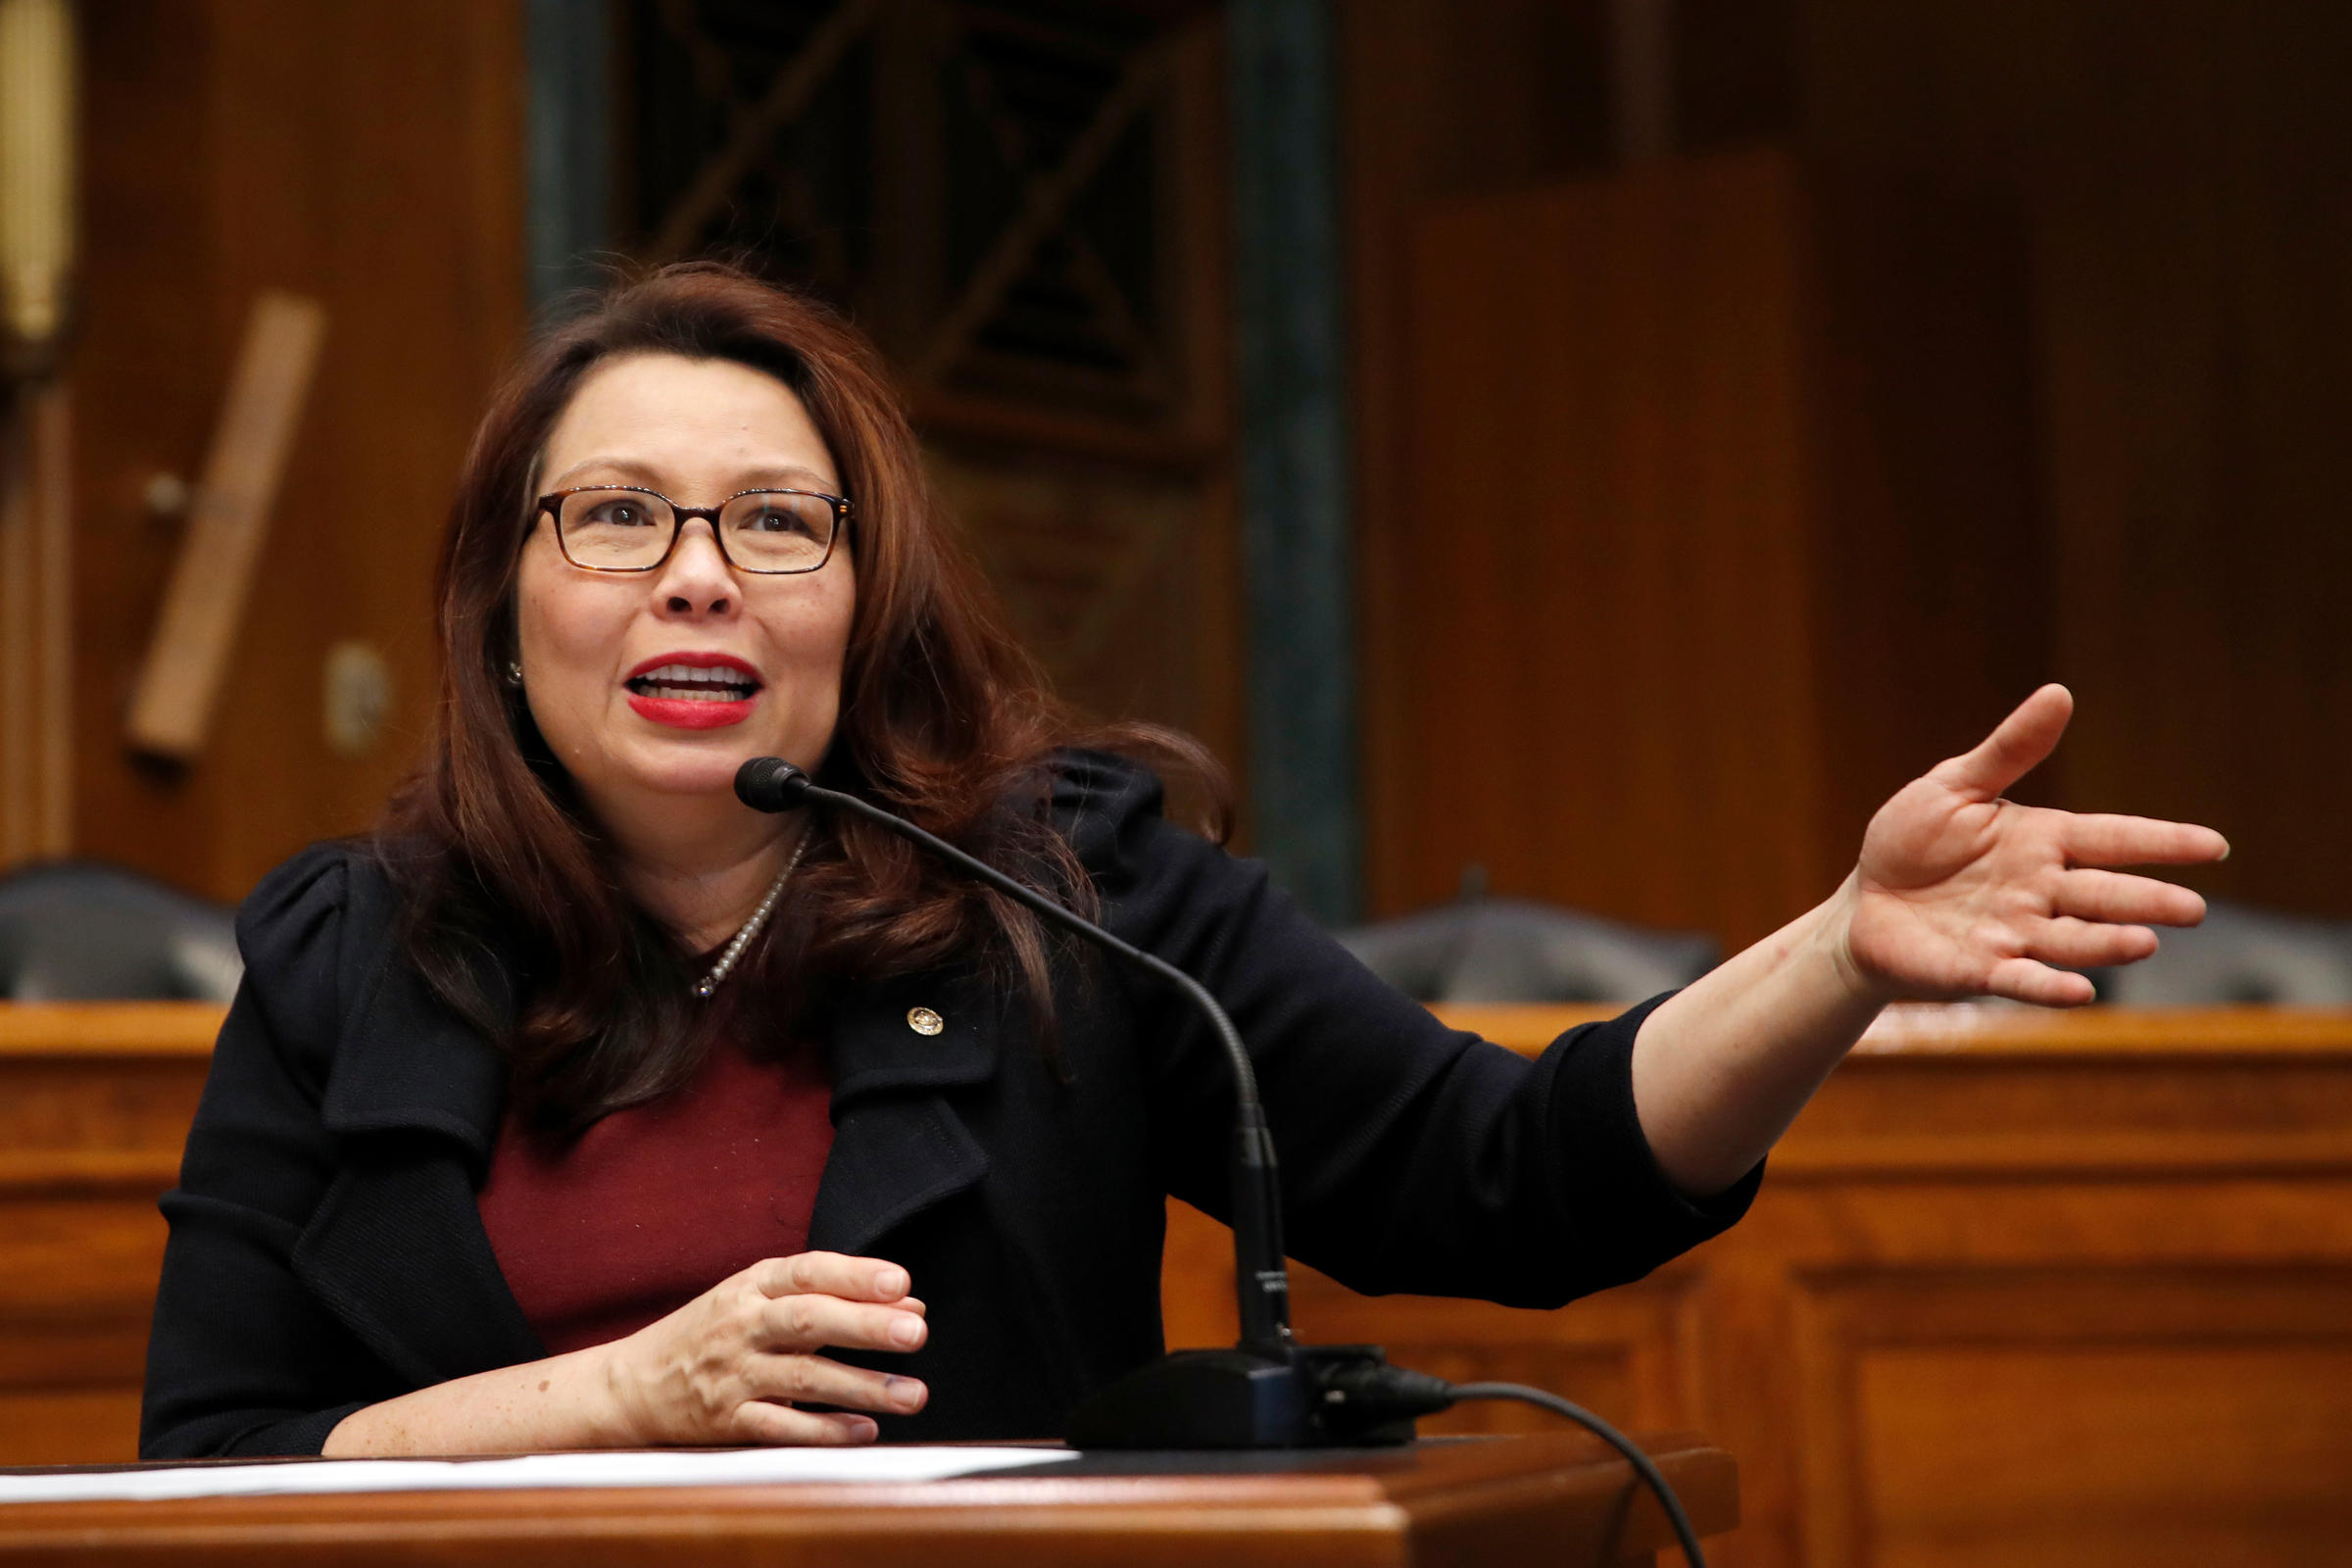 US senator first to give birth while in office